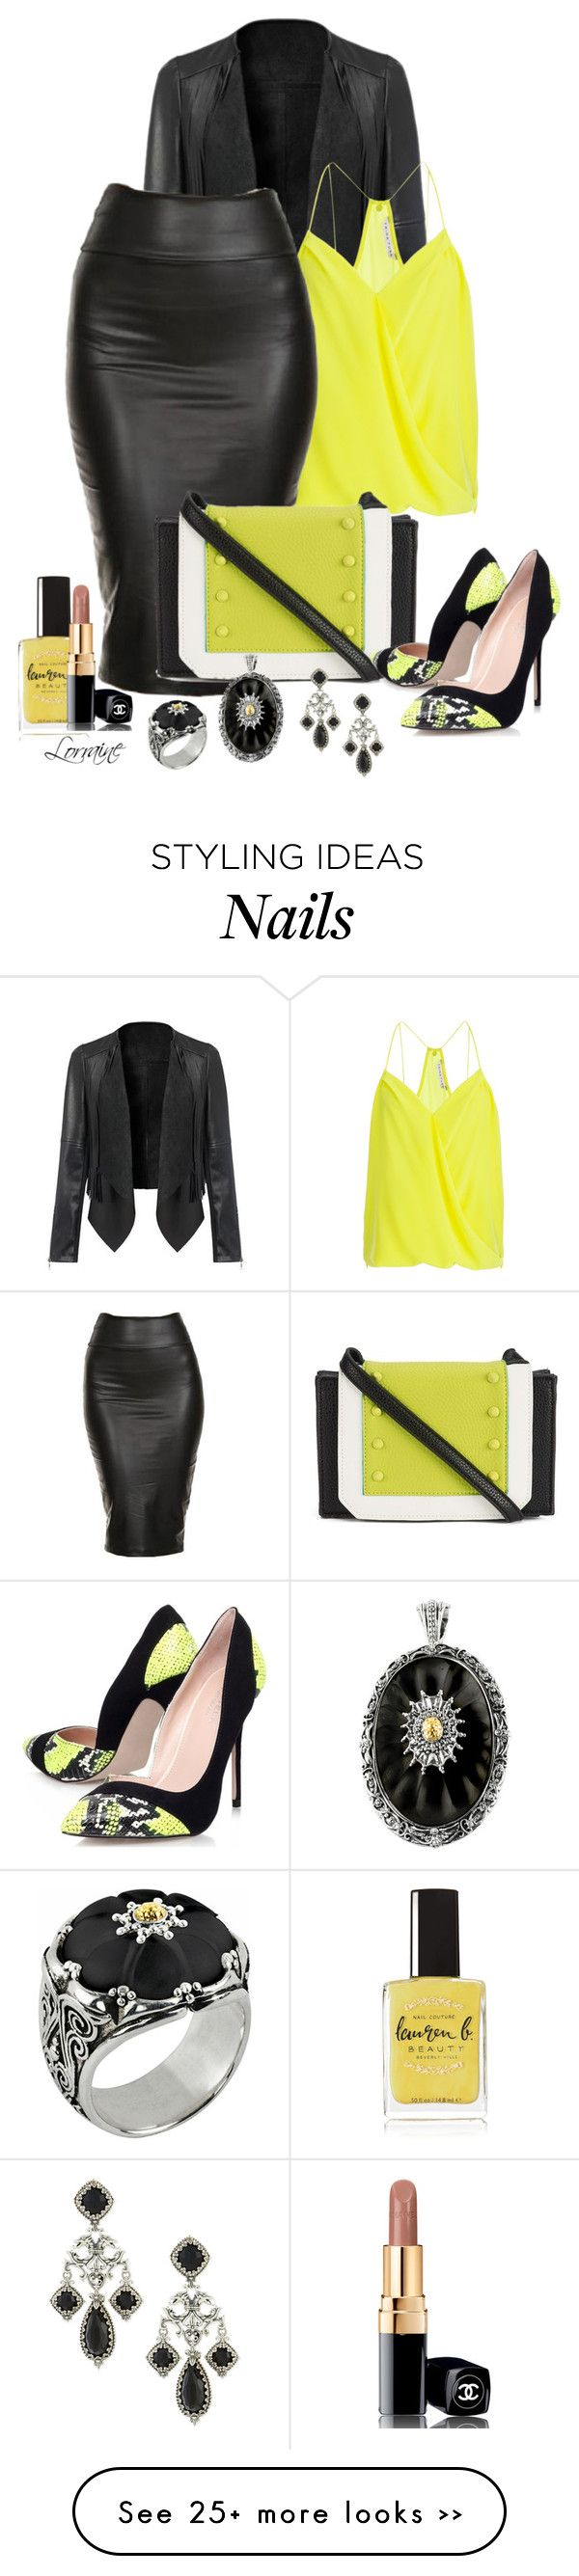 """Yellow Top"" by lorrainekeenan on Polyvore                                                                                                                                                                                 More"